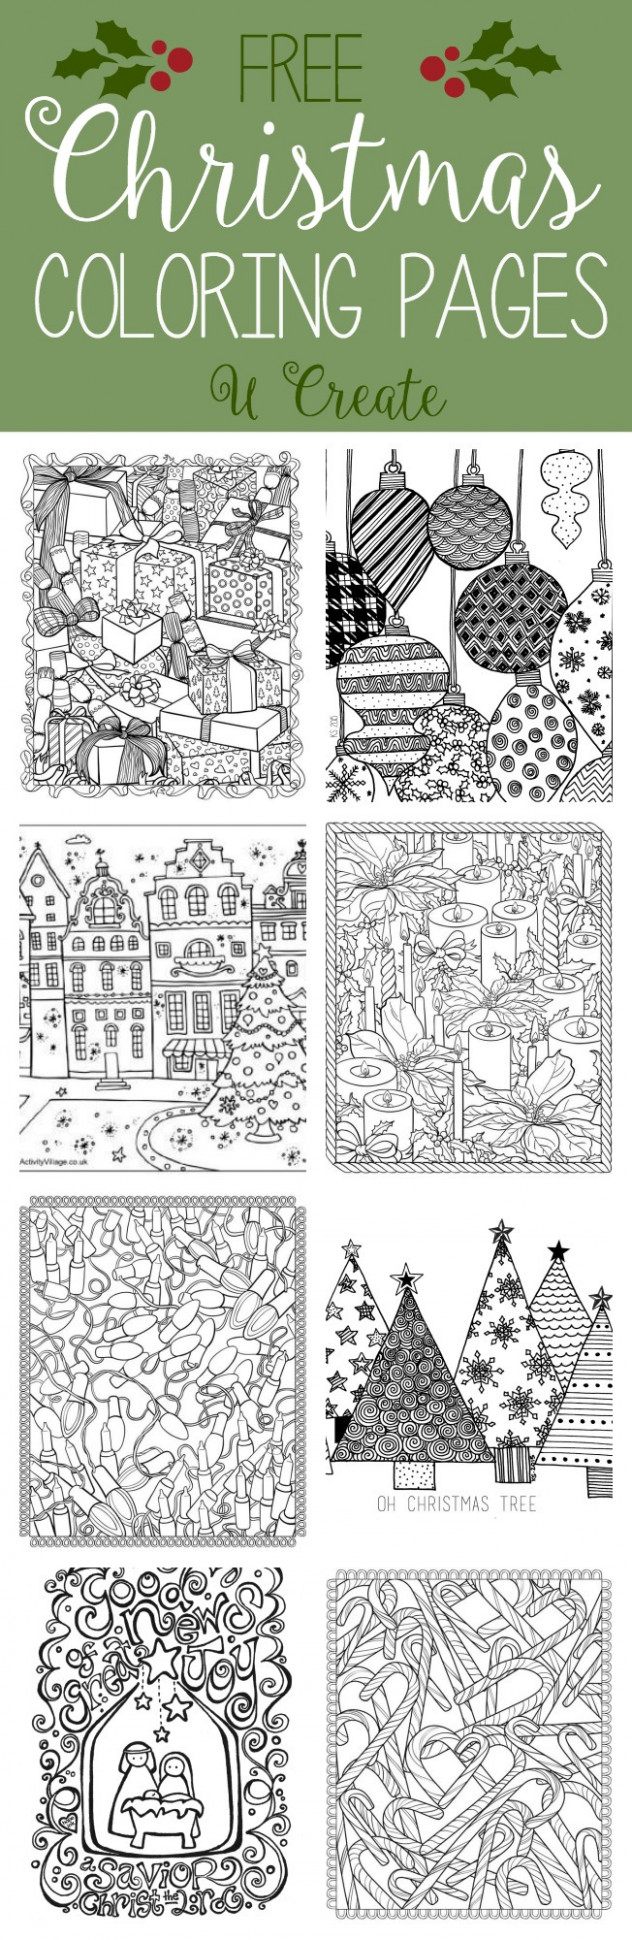 Free Christmas Adult Coloring Pages – U Create – Christmas Coloring Pages For Free